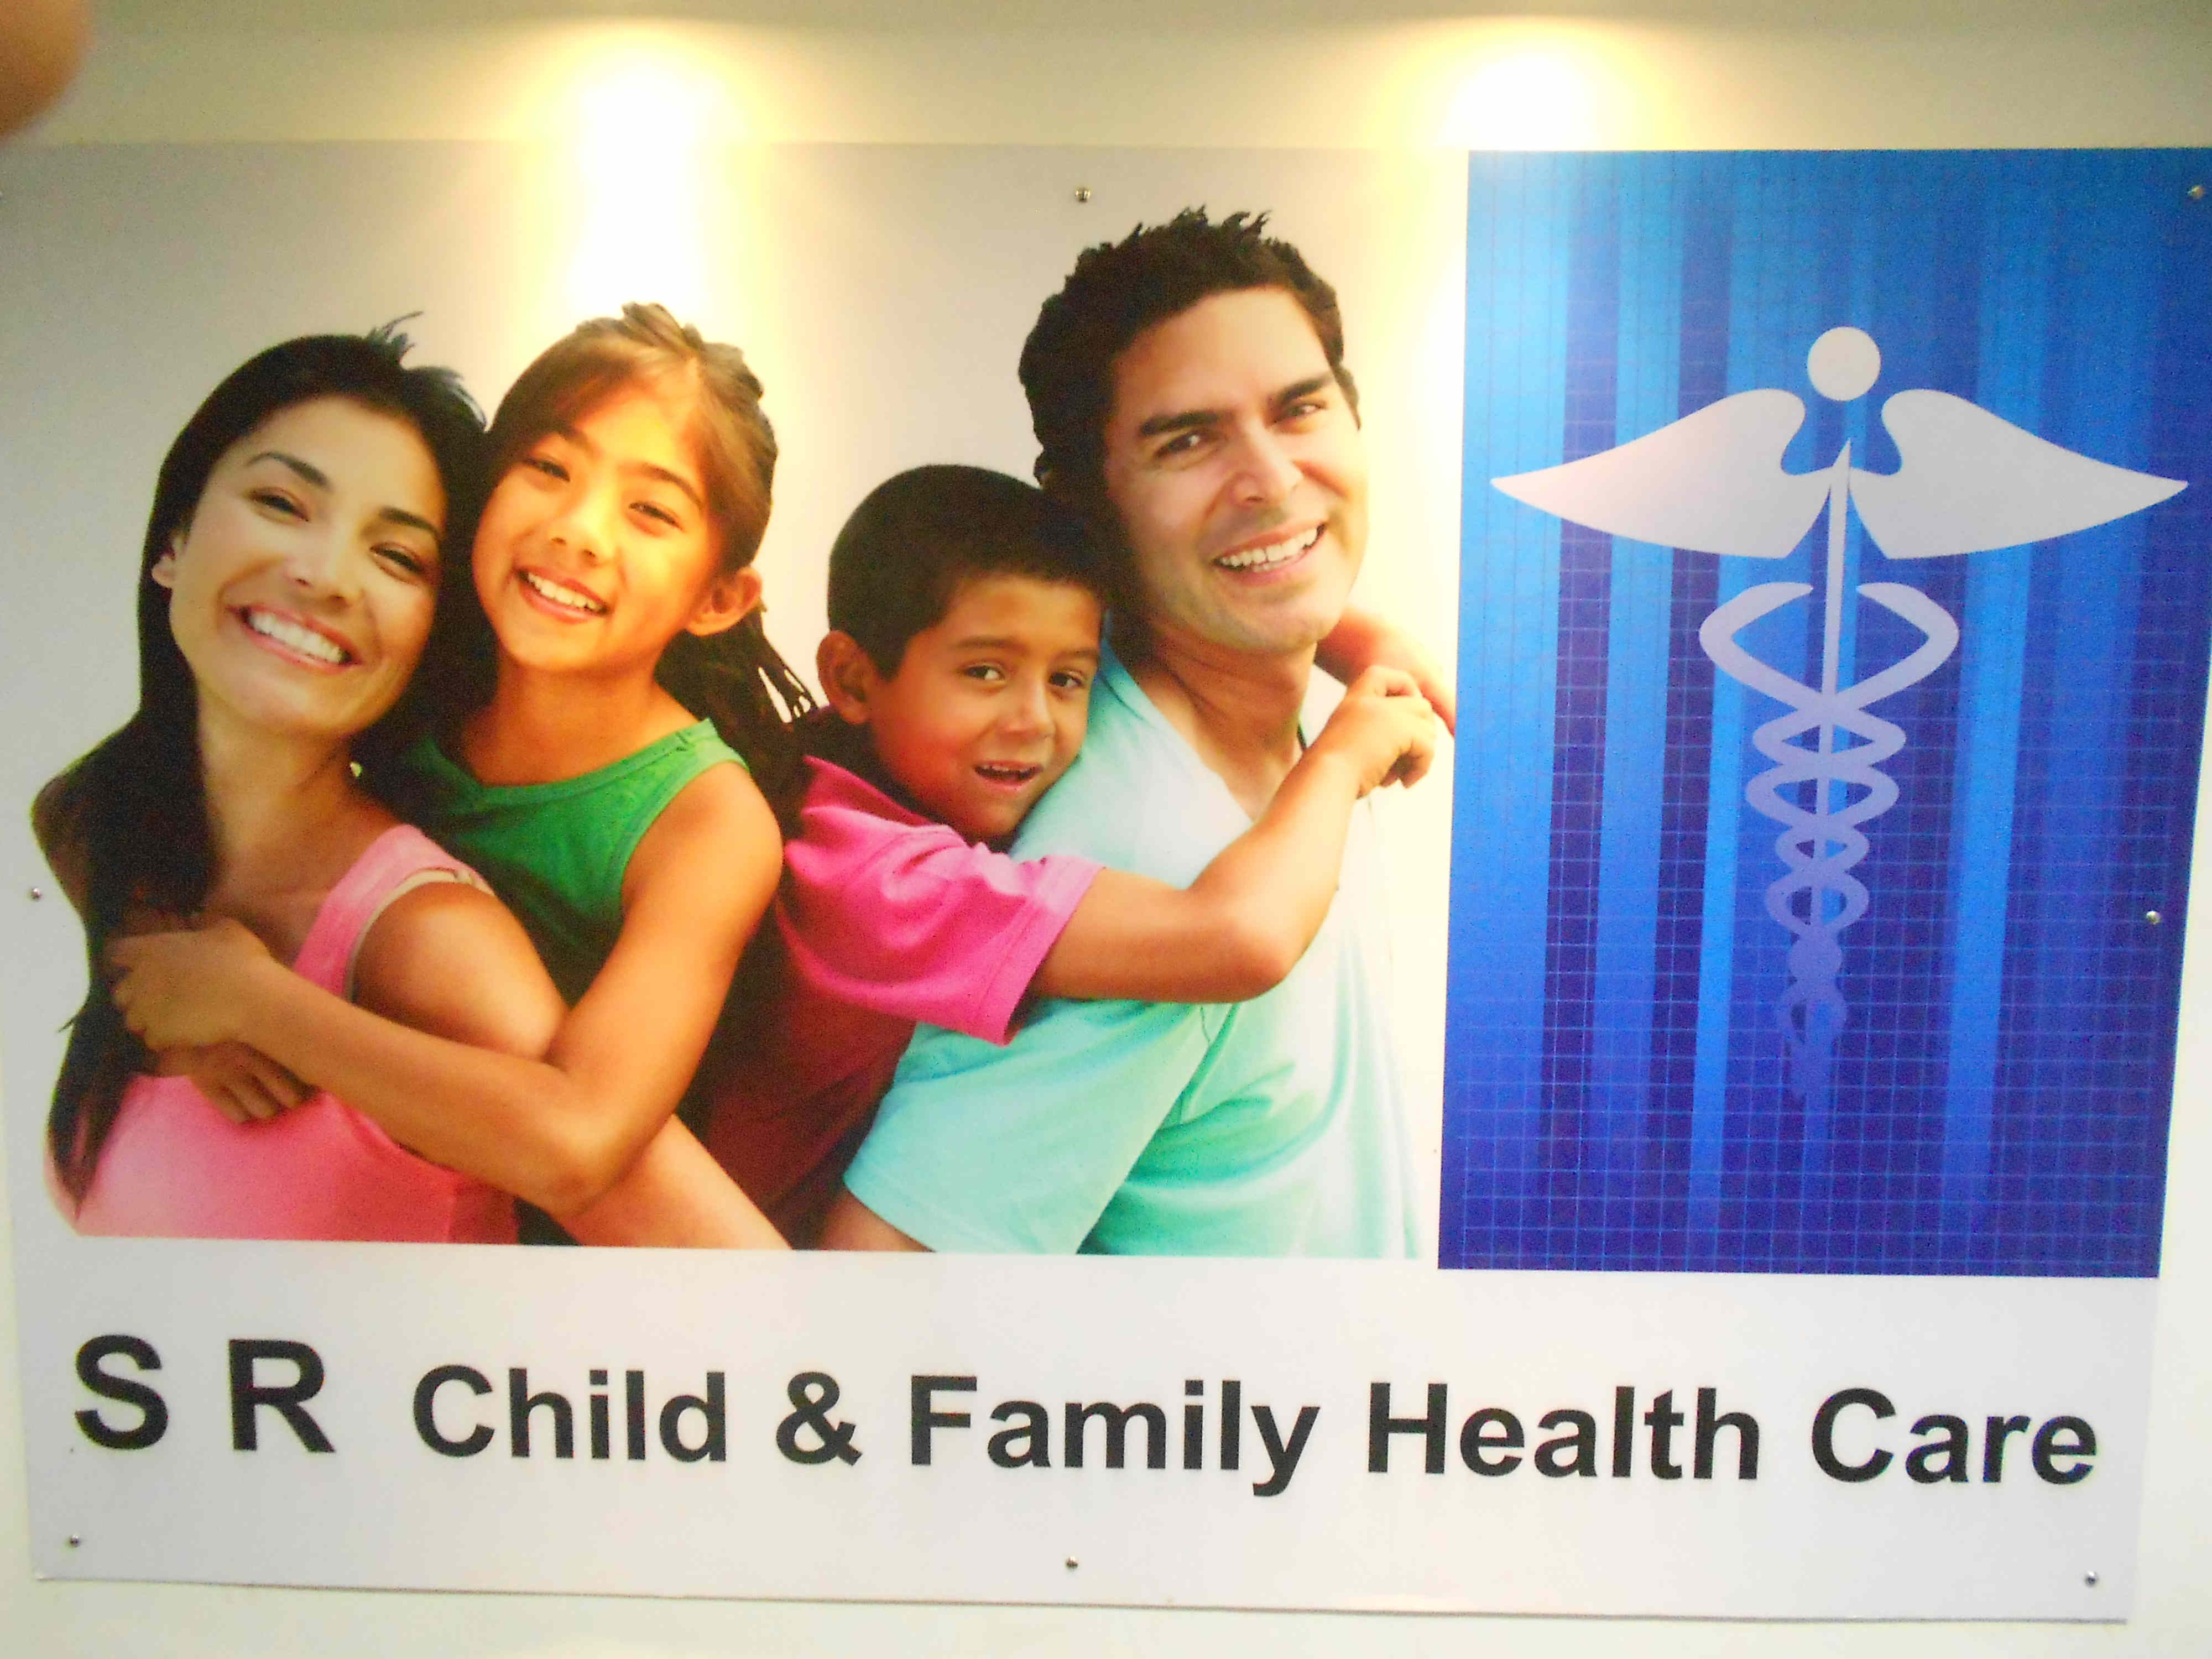 S R Child and Family Health Care